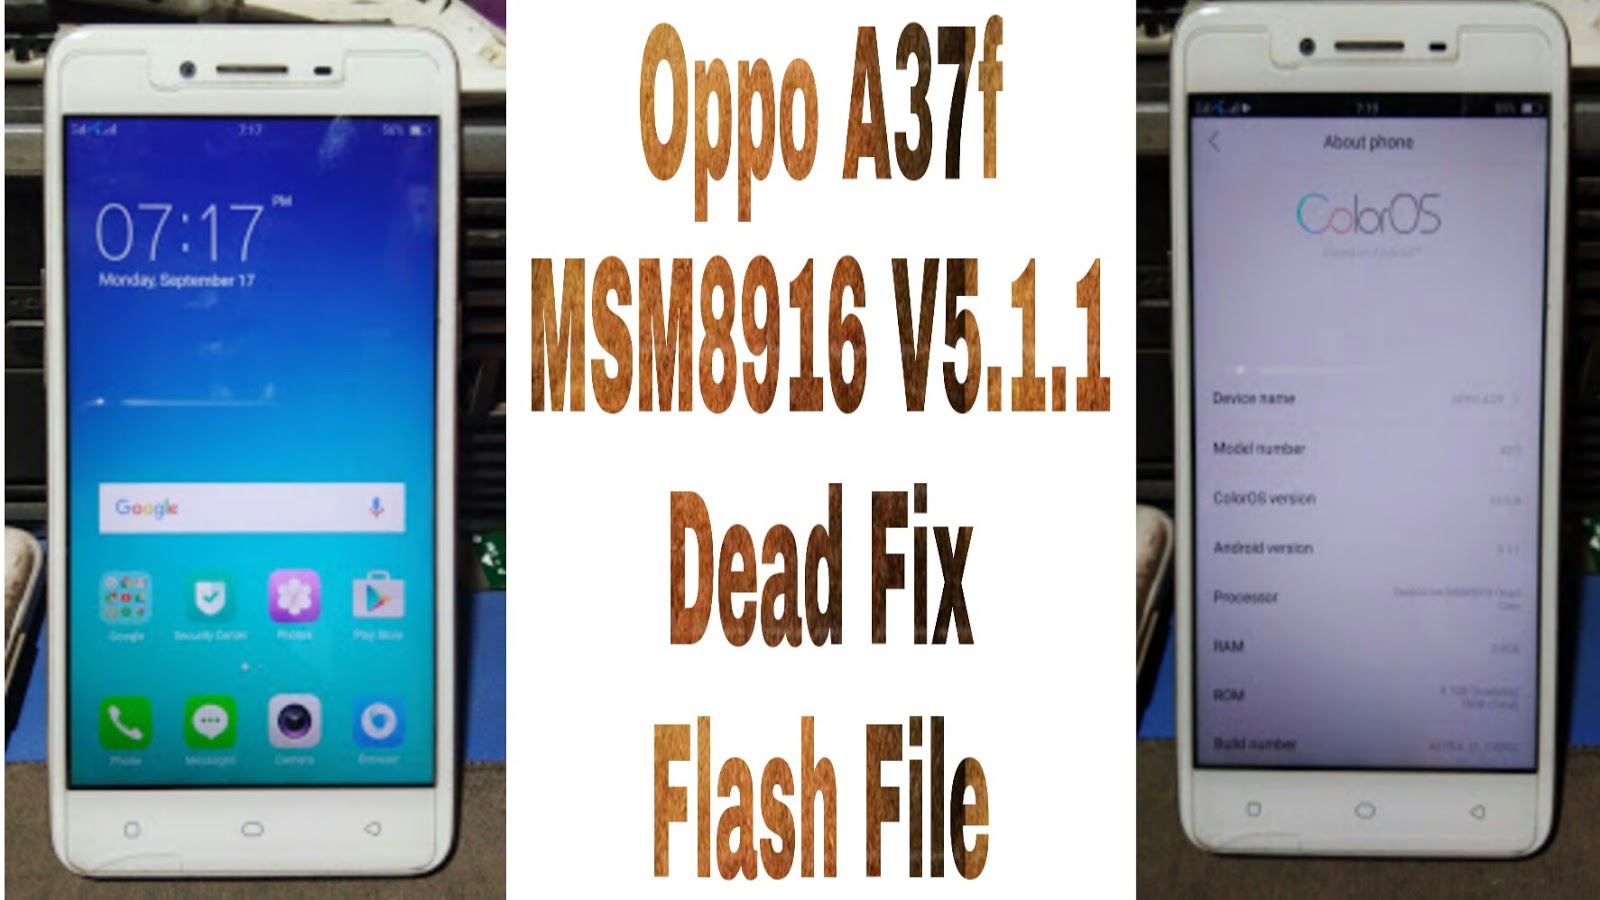 Oppo A37f MSM8916 V5 1 1 Dead Fix Tested Flash File Free - Download